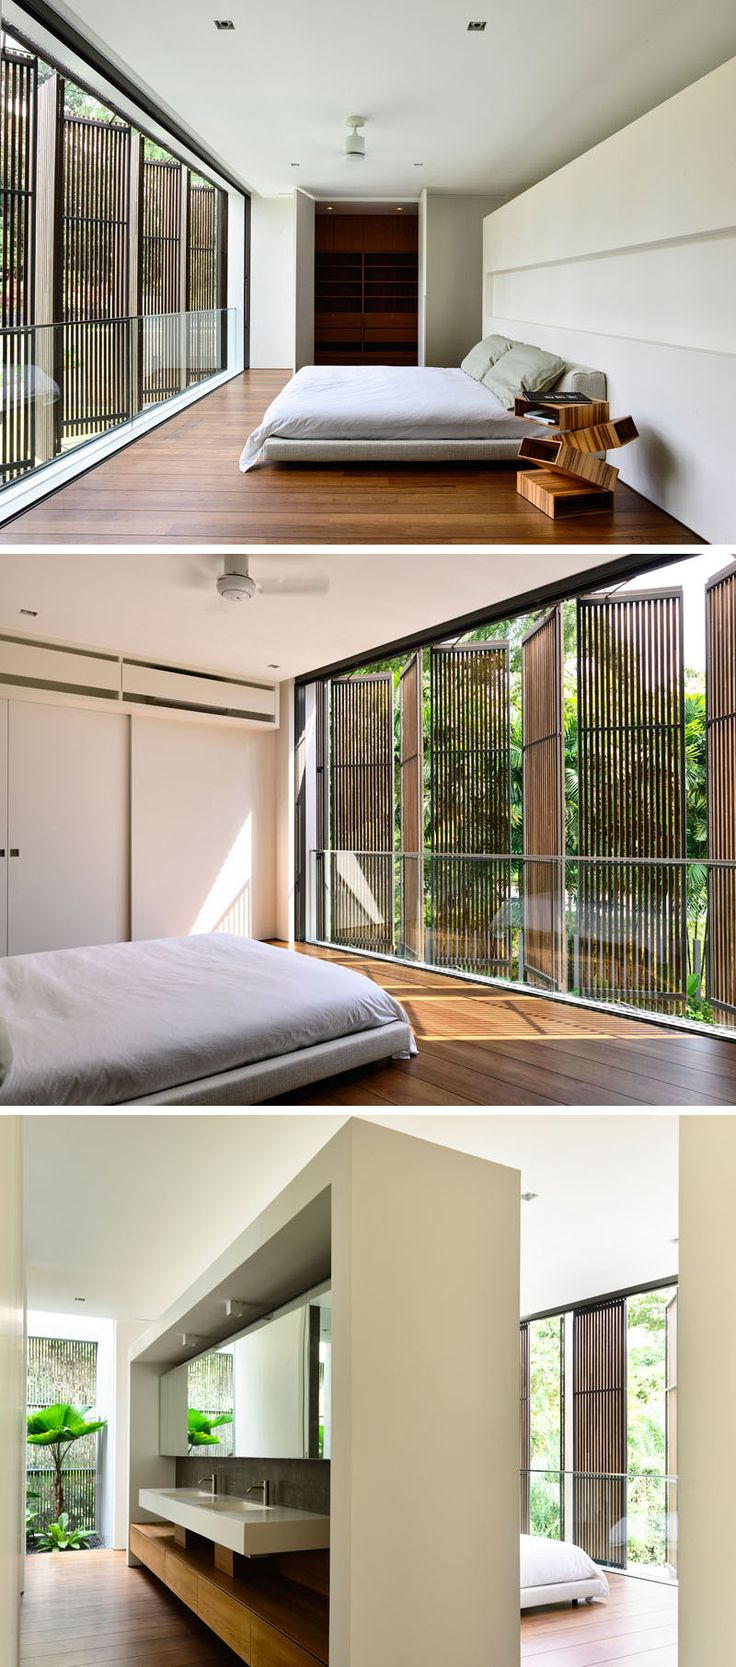 Bathroom window louvers - This Singaporean House Completely Opens Up To The Backyard